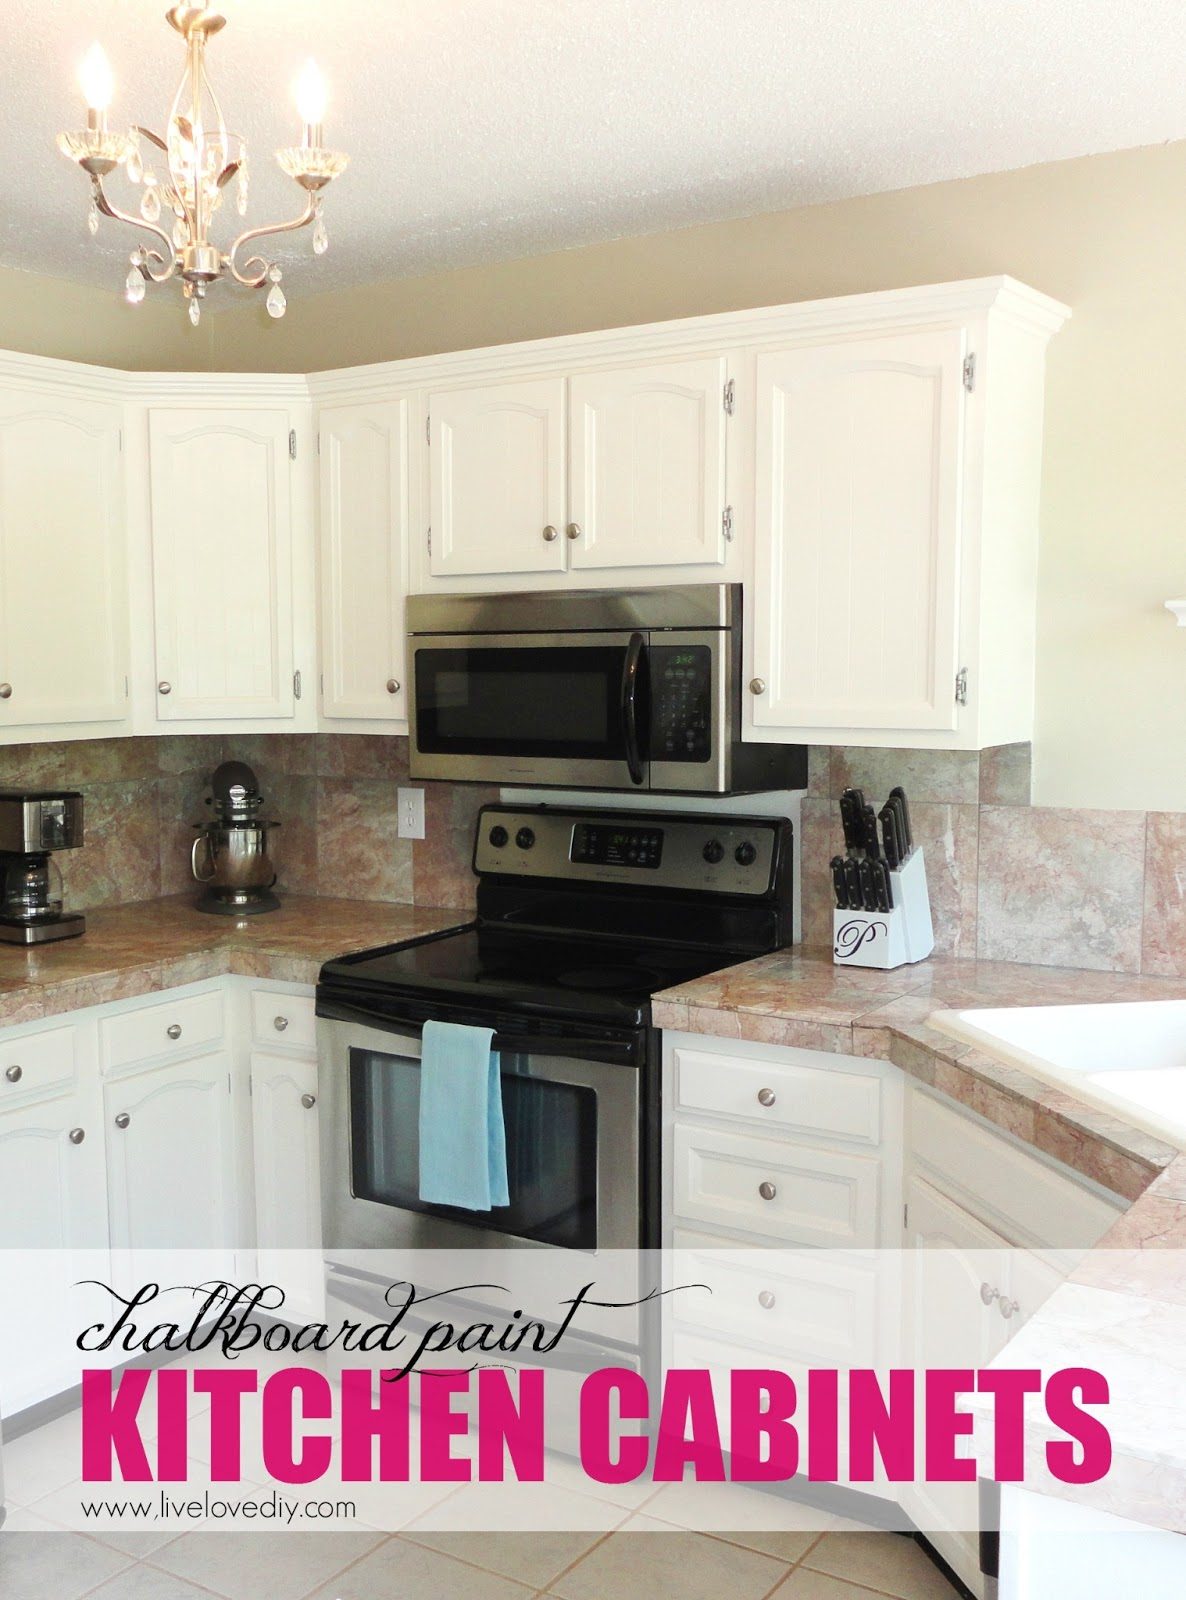 best paint to use on kitchen cabinets. The Chalkboard Paint Kitchen Cabinet Makeover Best To Use On Cabinets